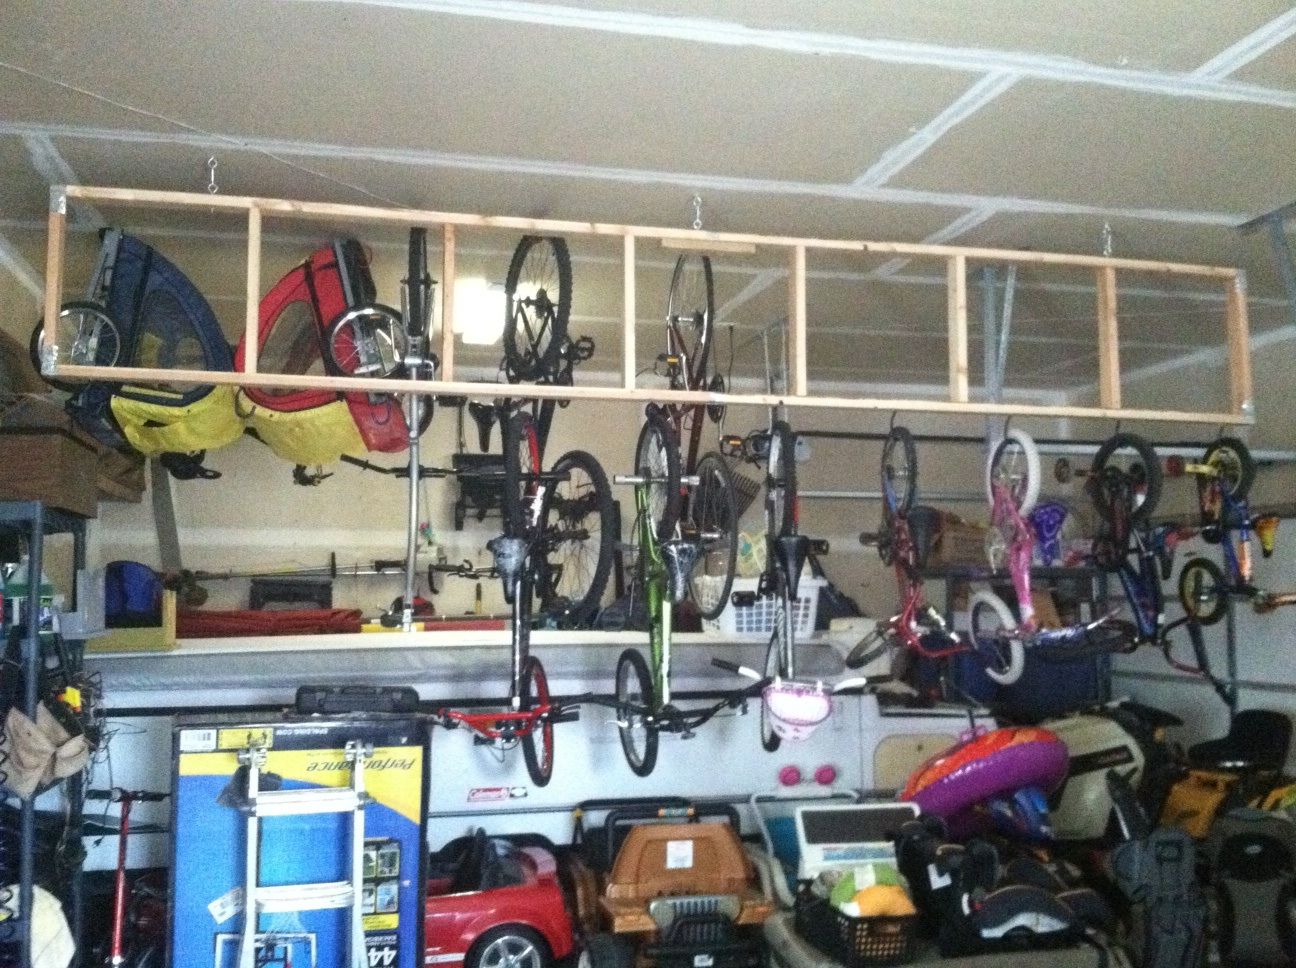 Exceptionnel With A Large Family Garage Storage 1